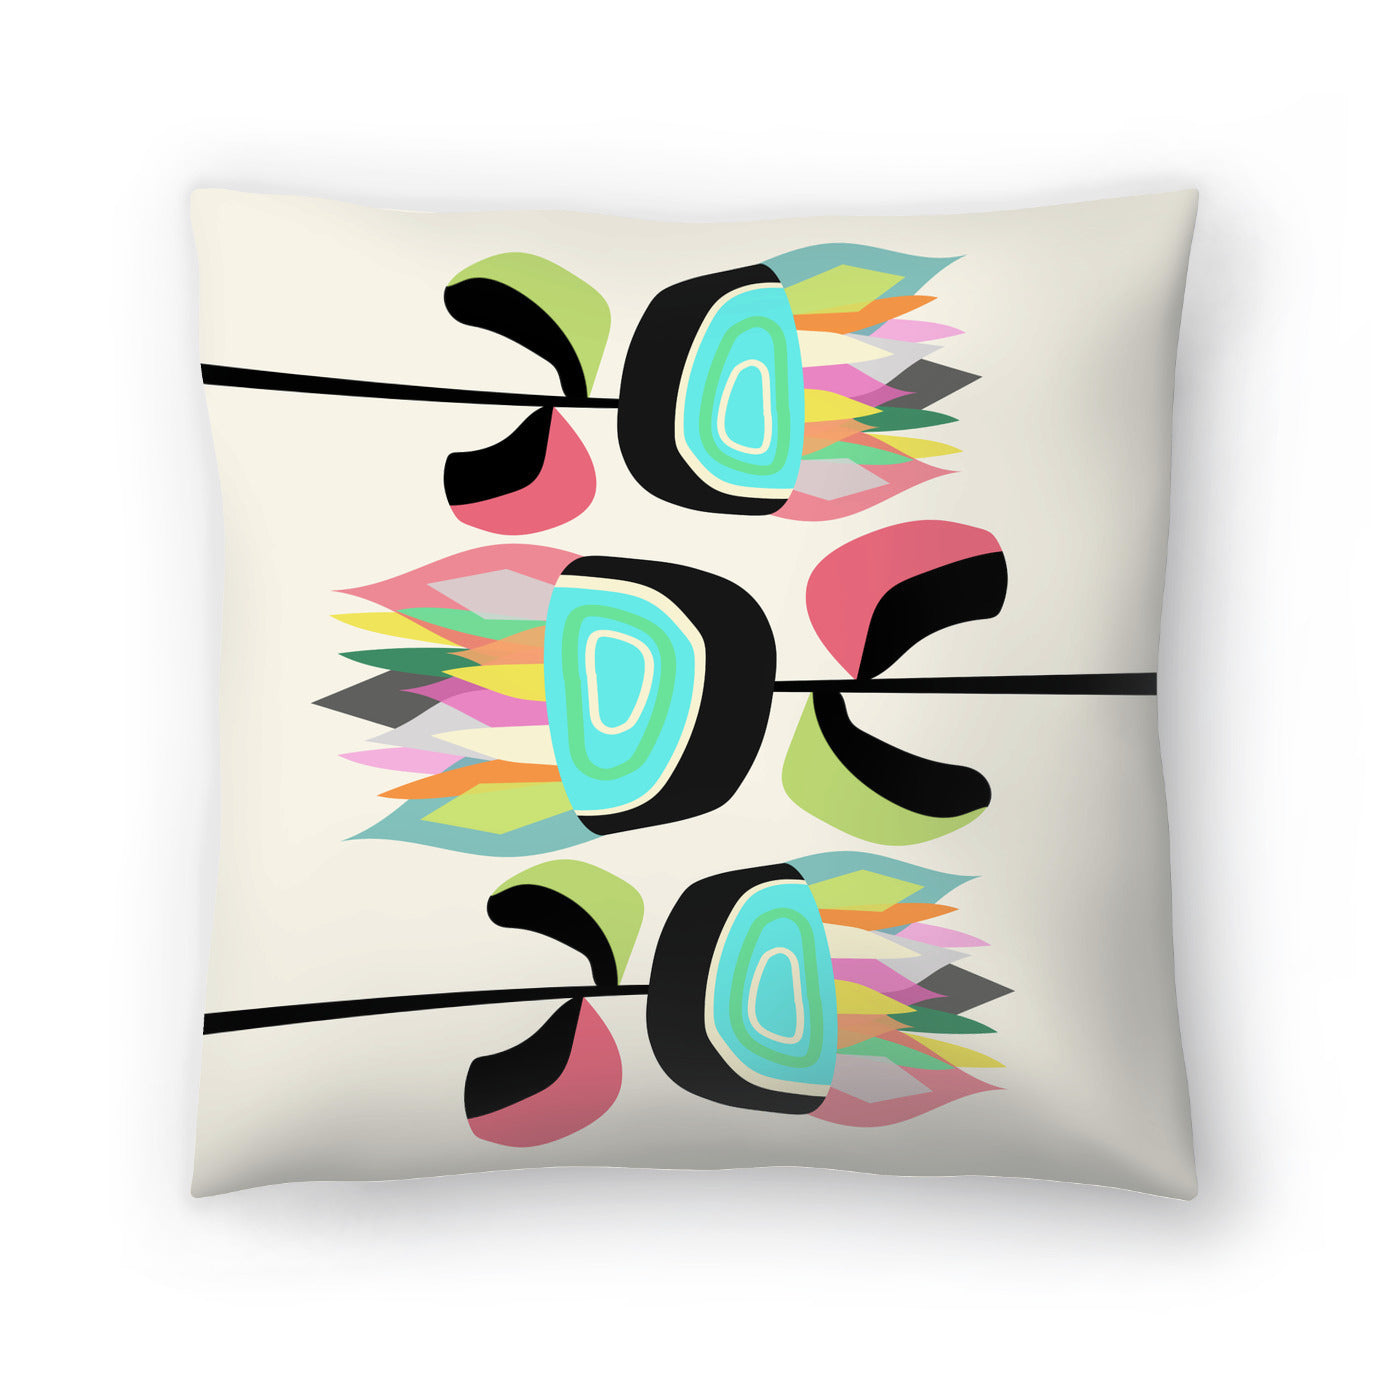 Joyful Plants by Susana Paz Decorative Pillow - Decorative Pillow - Americanflat